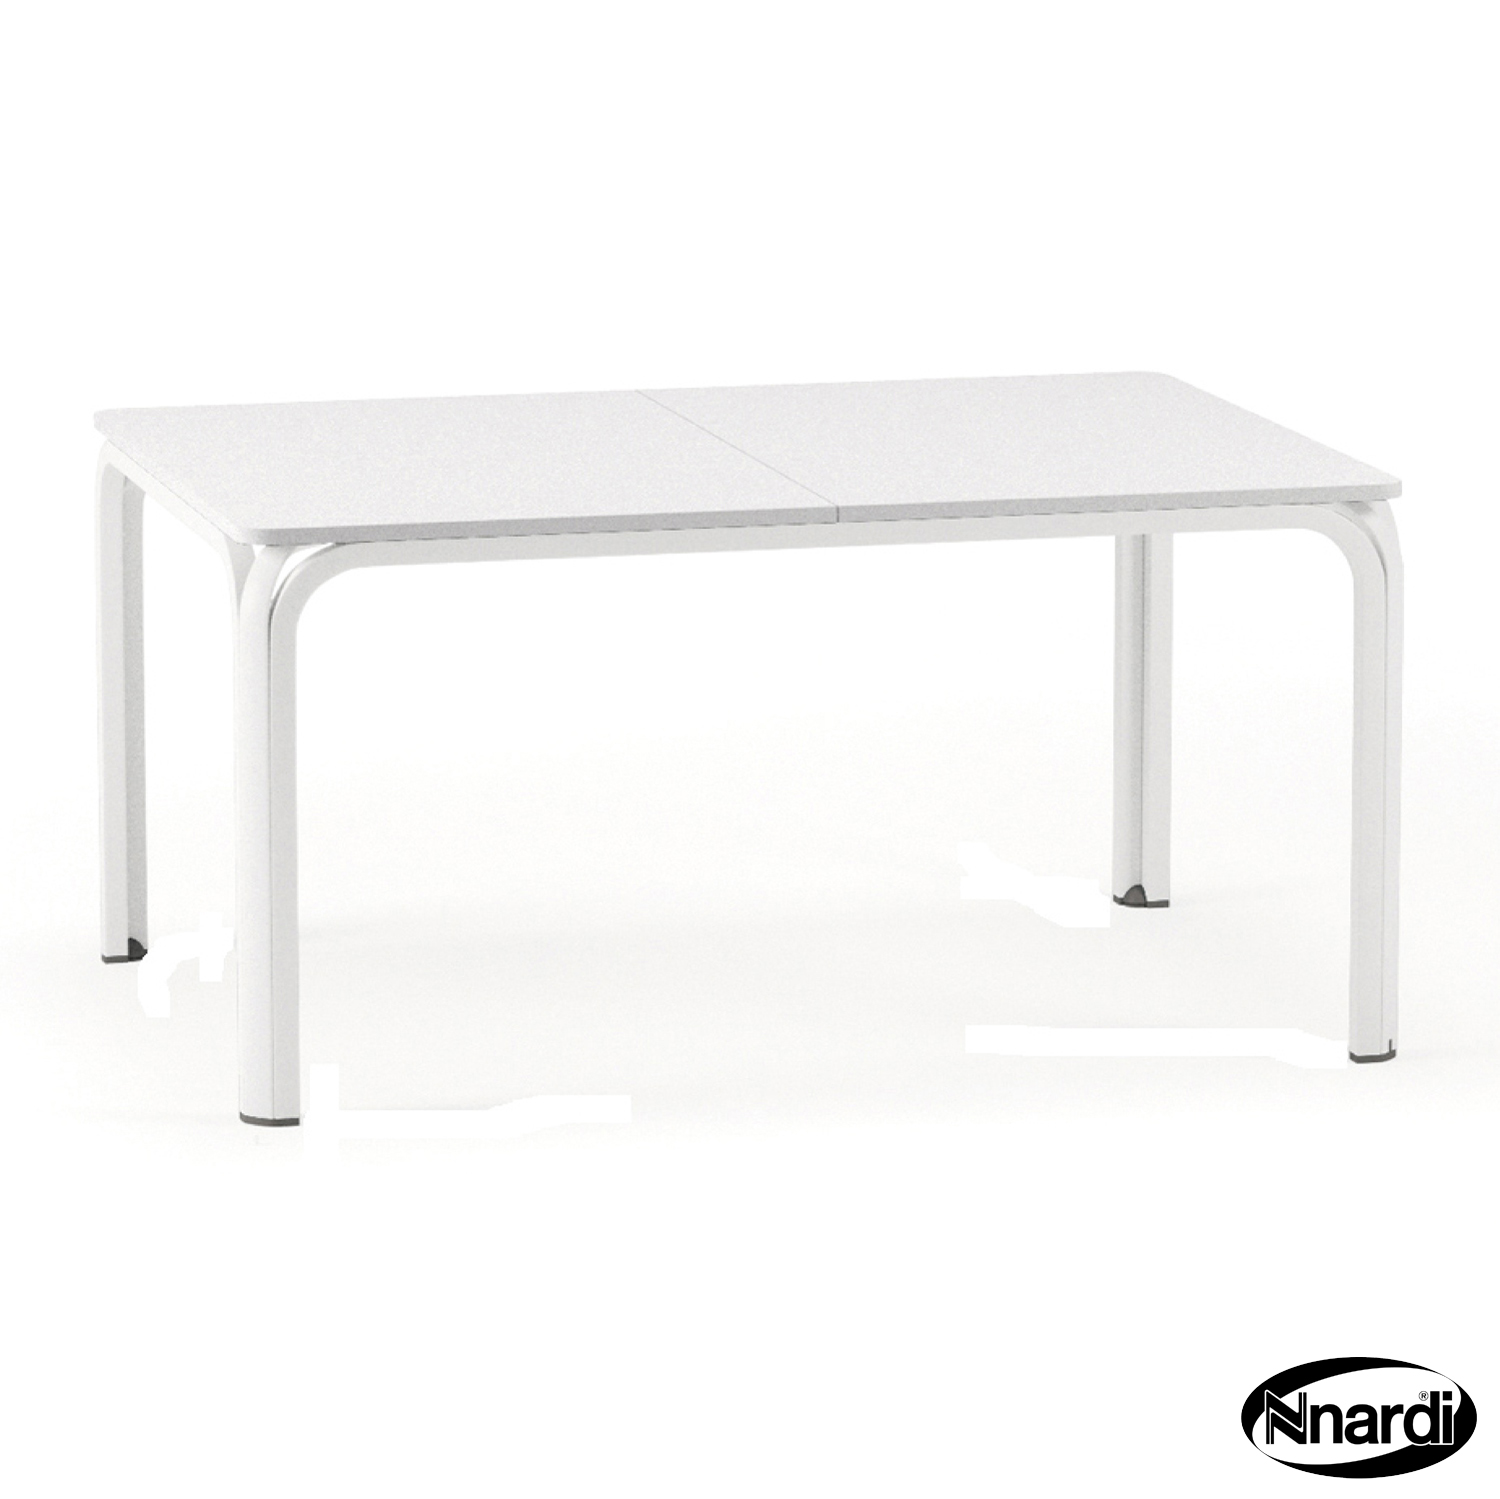 Lauro table white